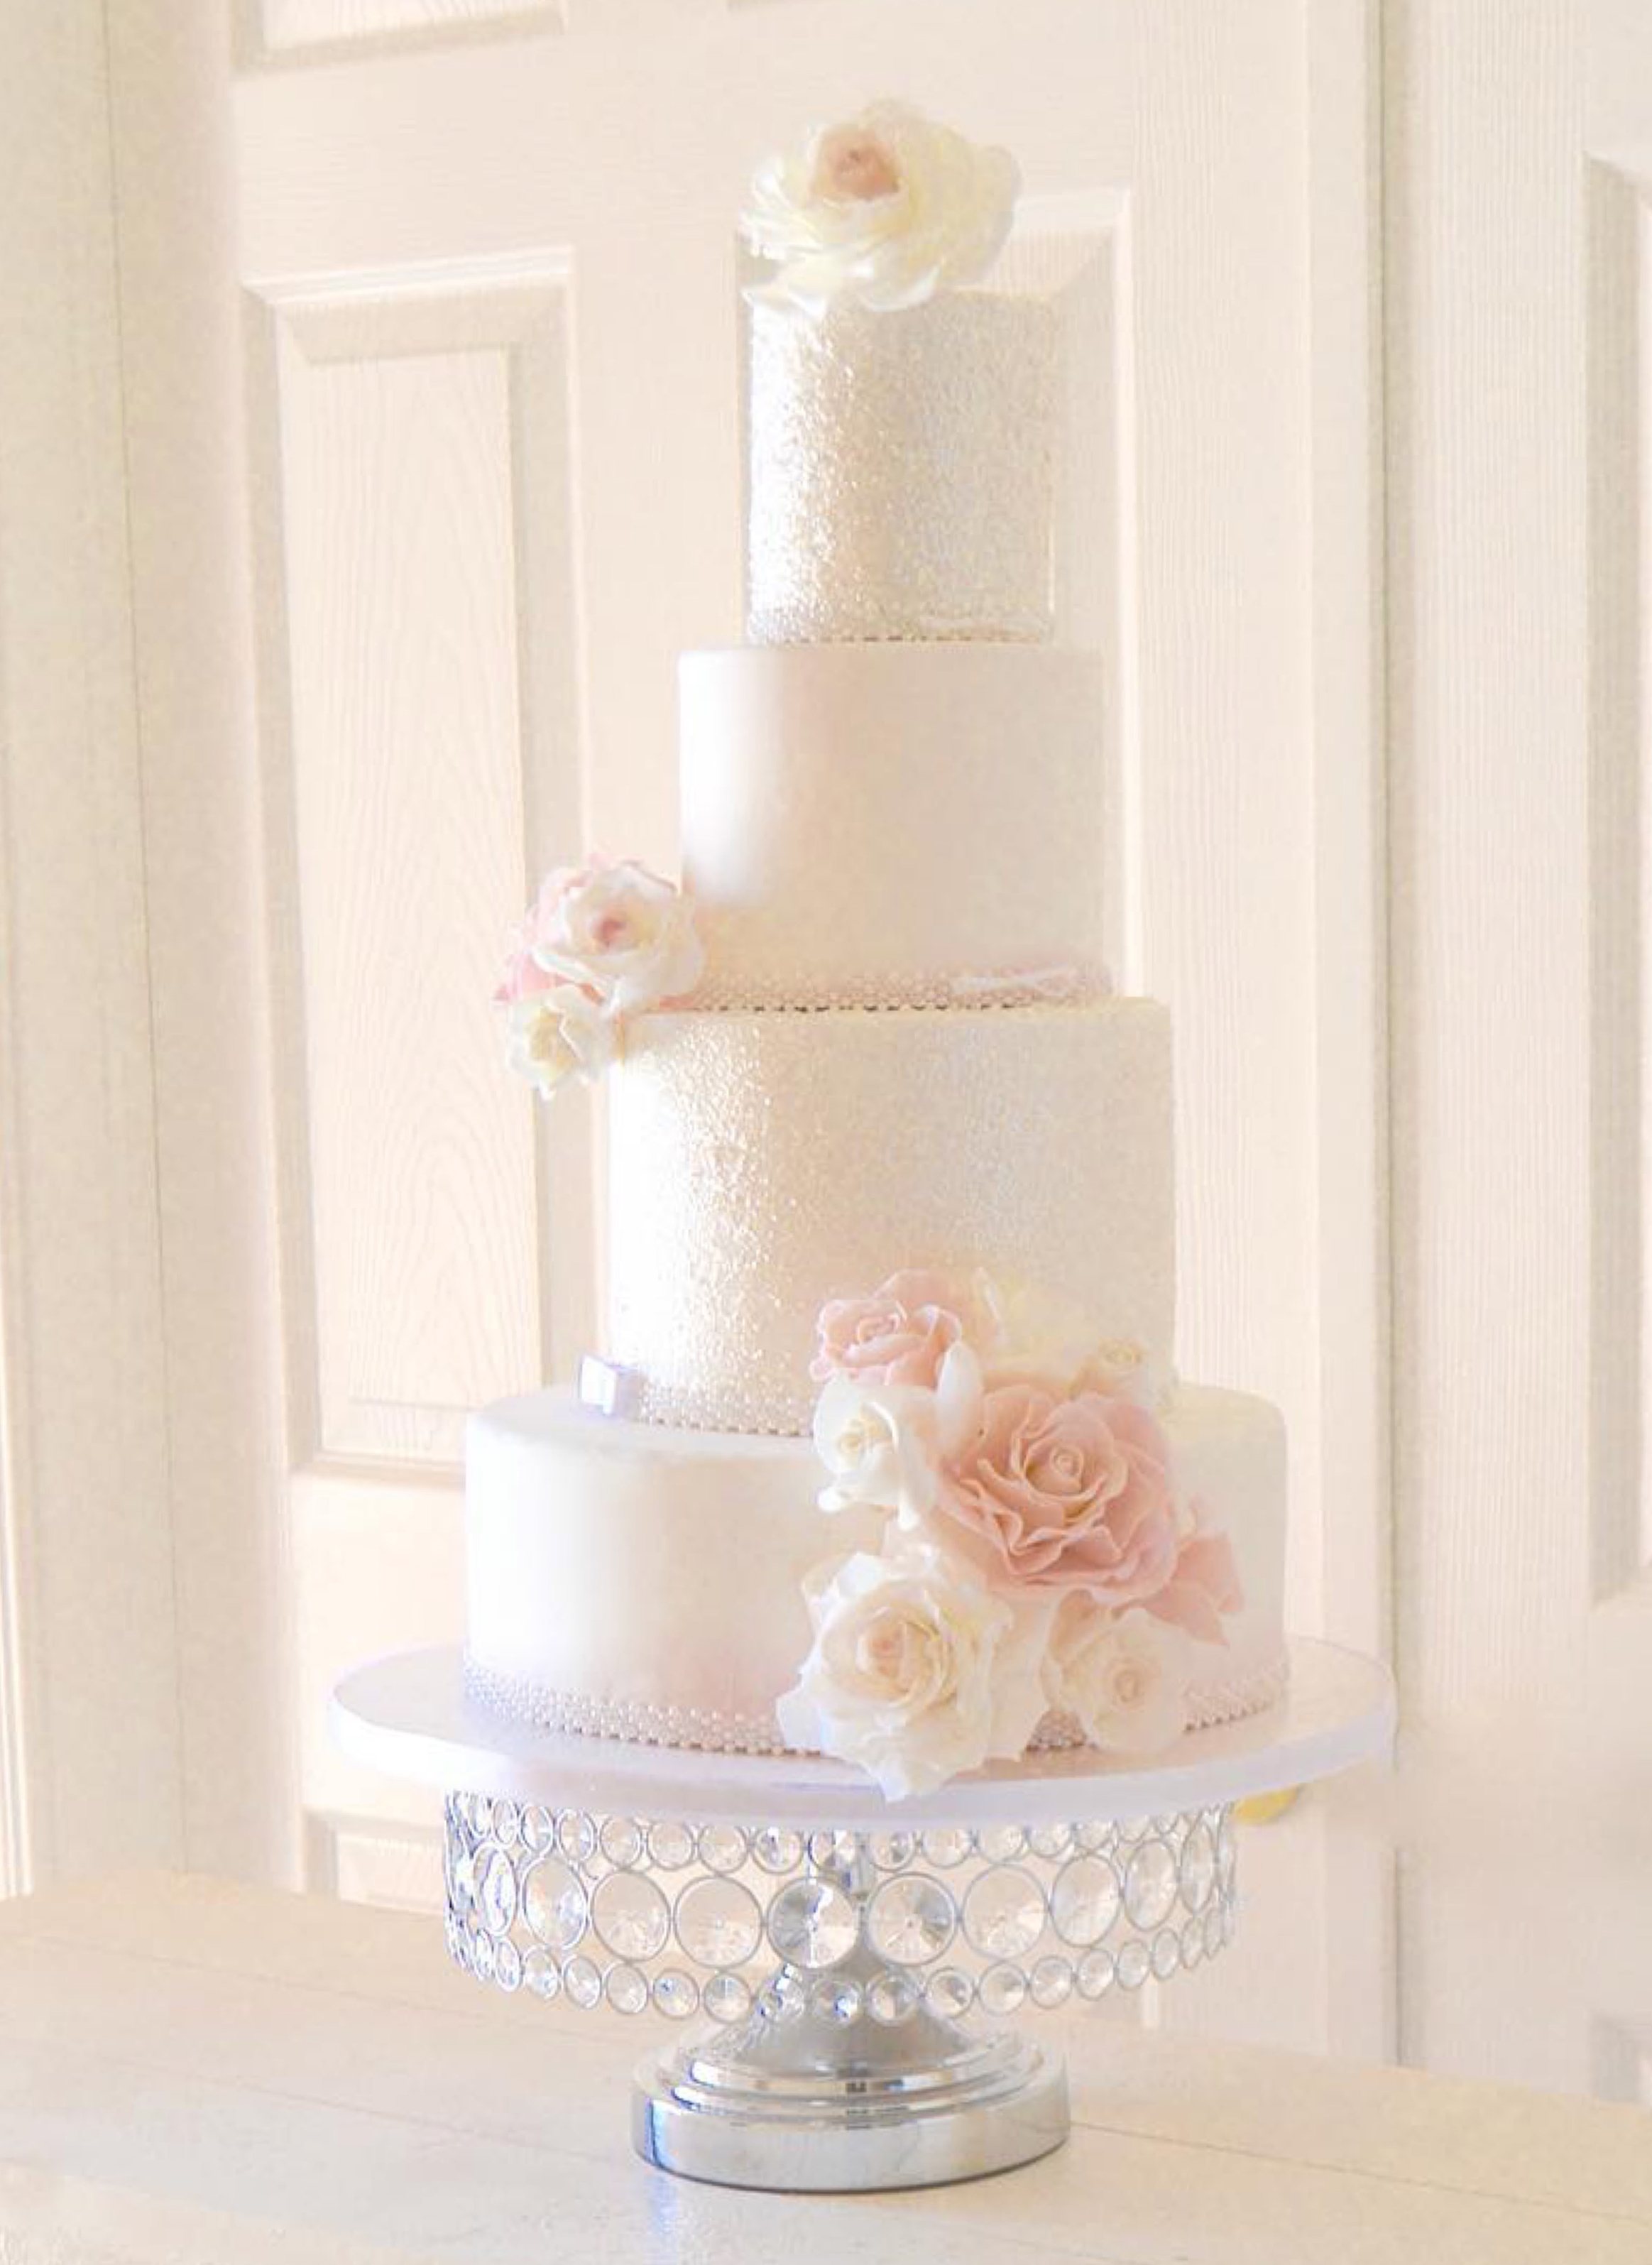 shiny silver bling cake stand by opulent treasures.jpg